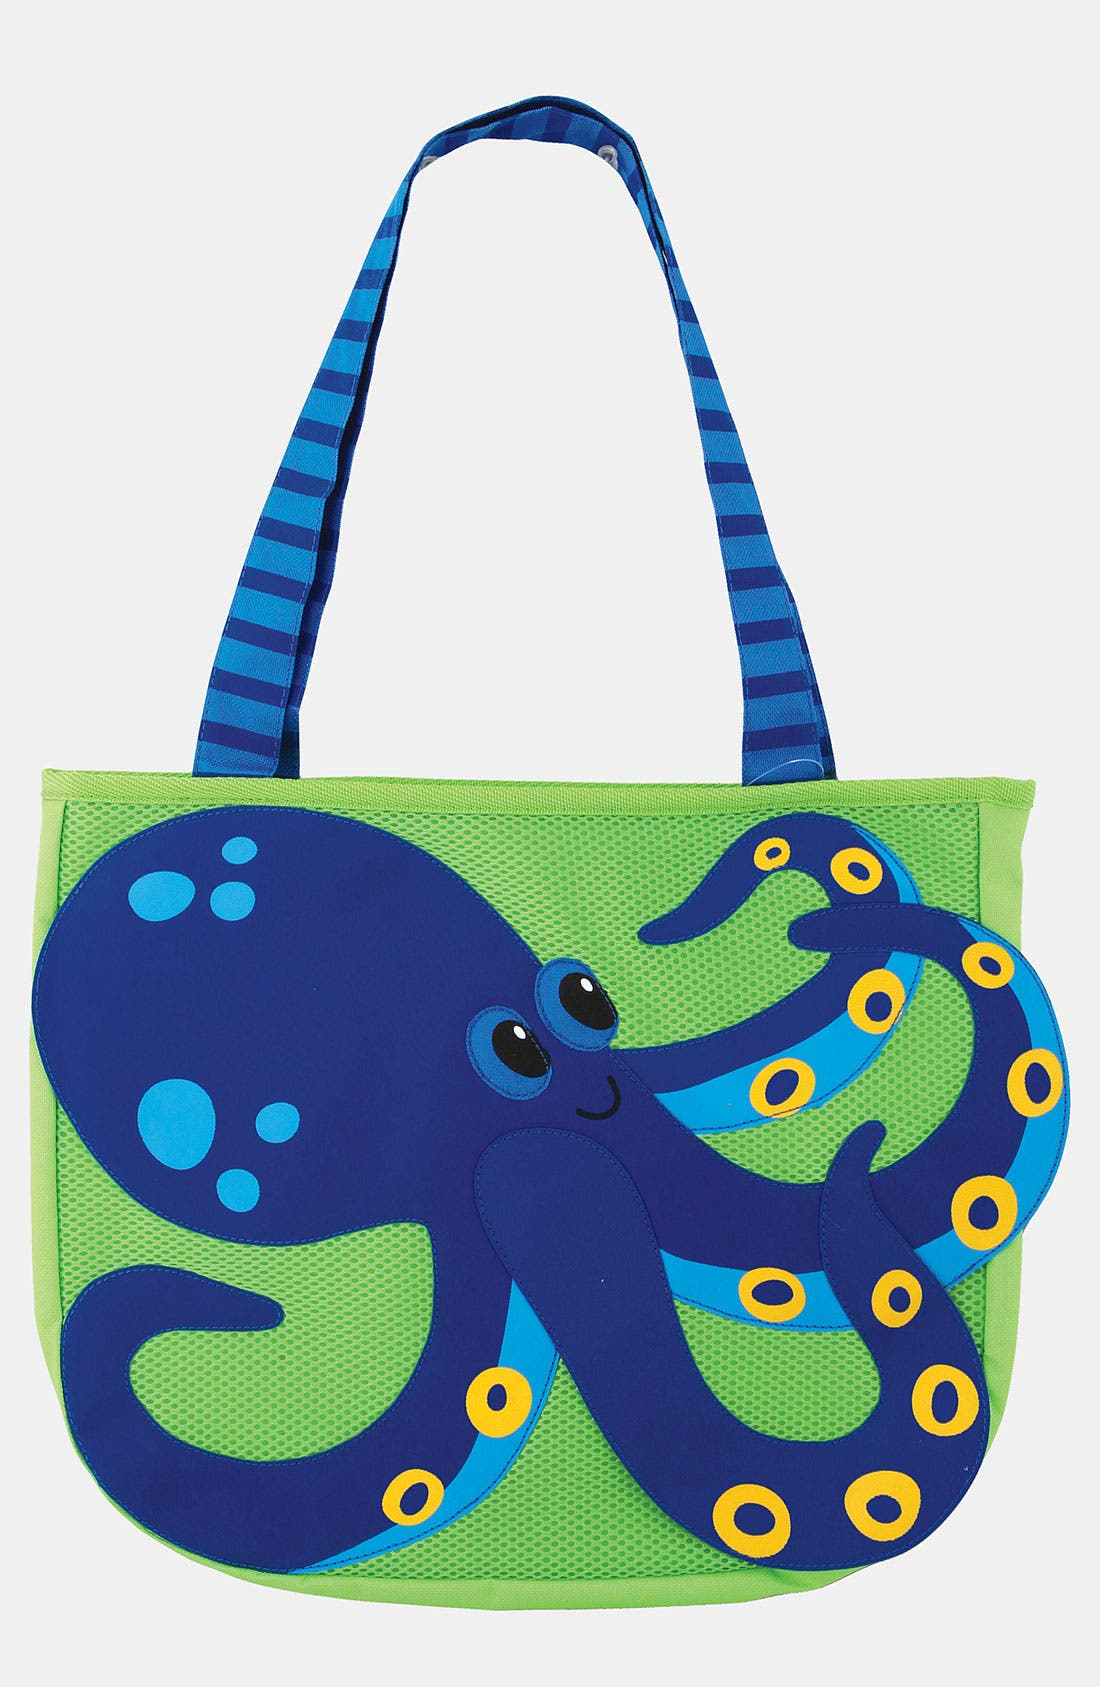 Alternate Image 1 Selected - Stephen Joseph 'Octopus' Beach Tote & Toys